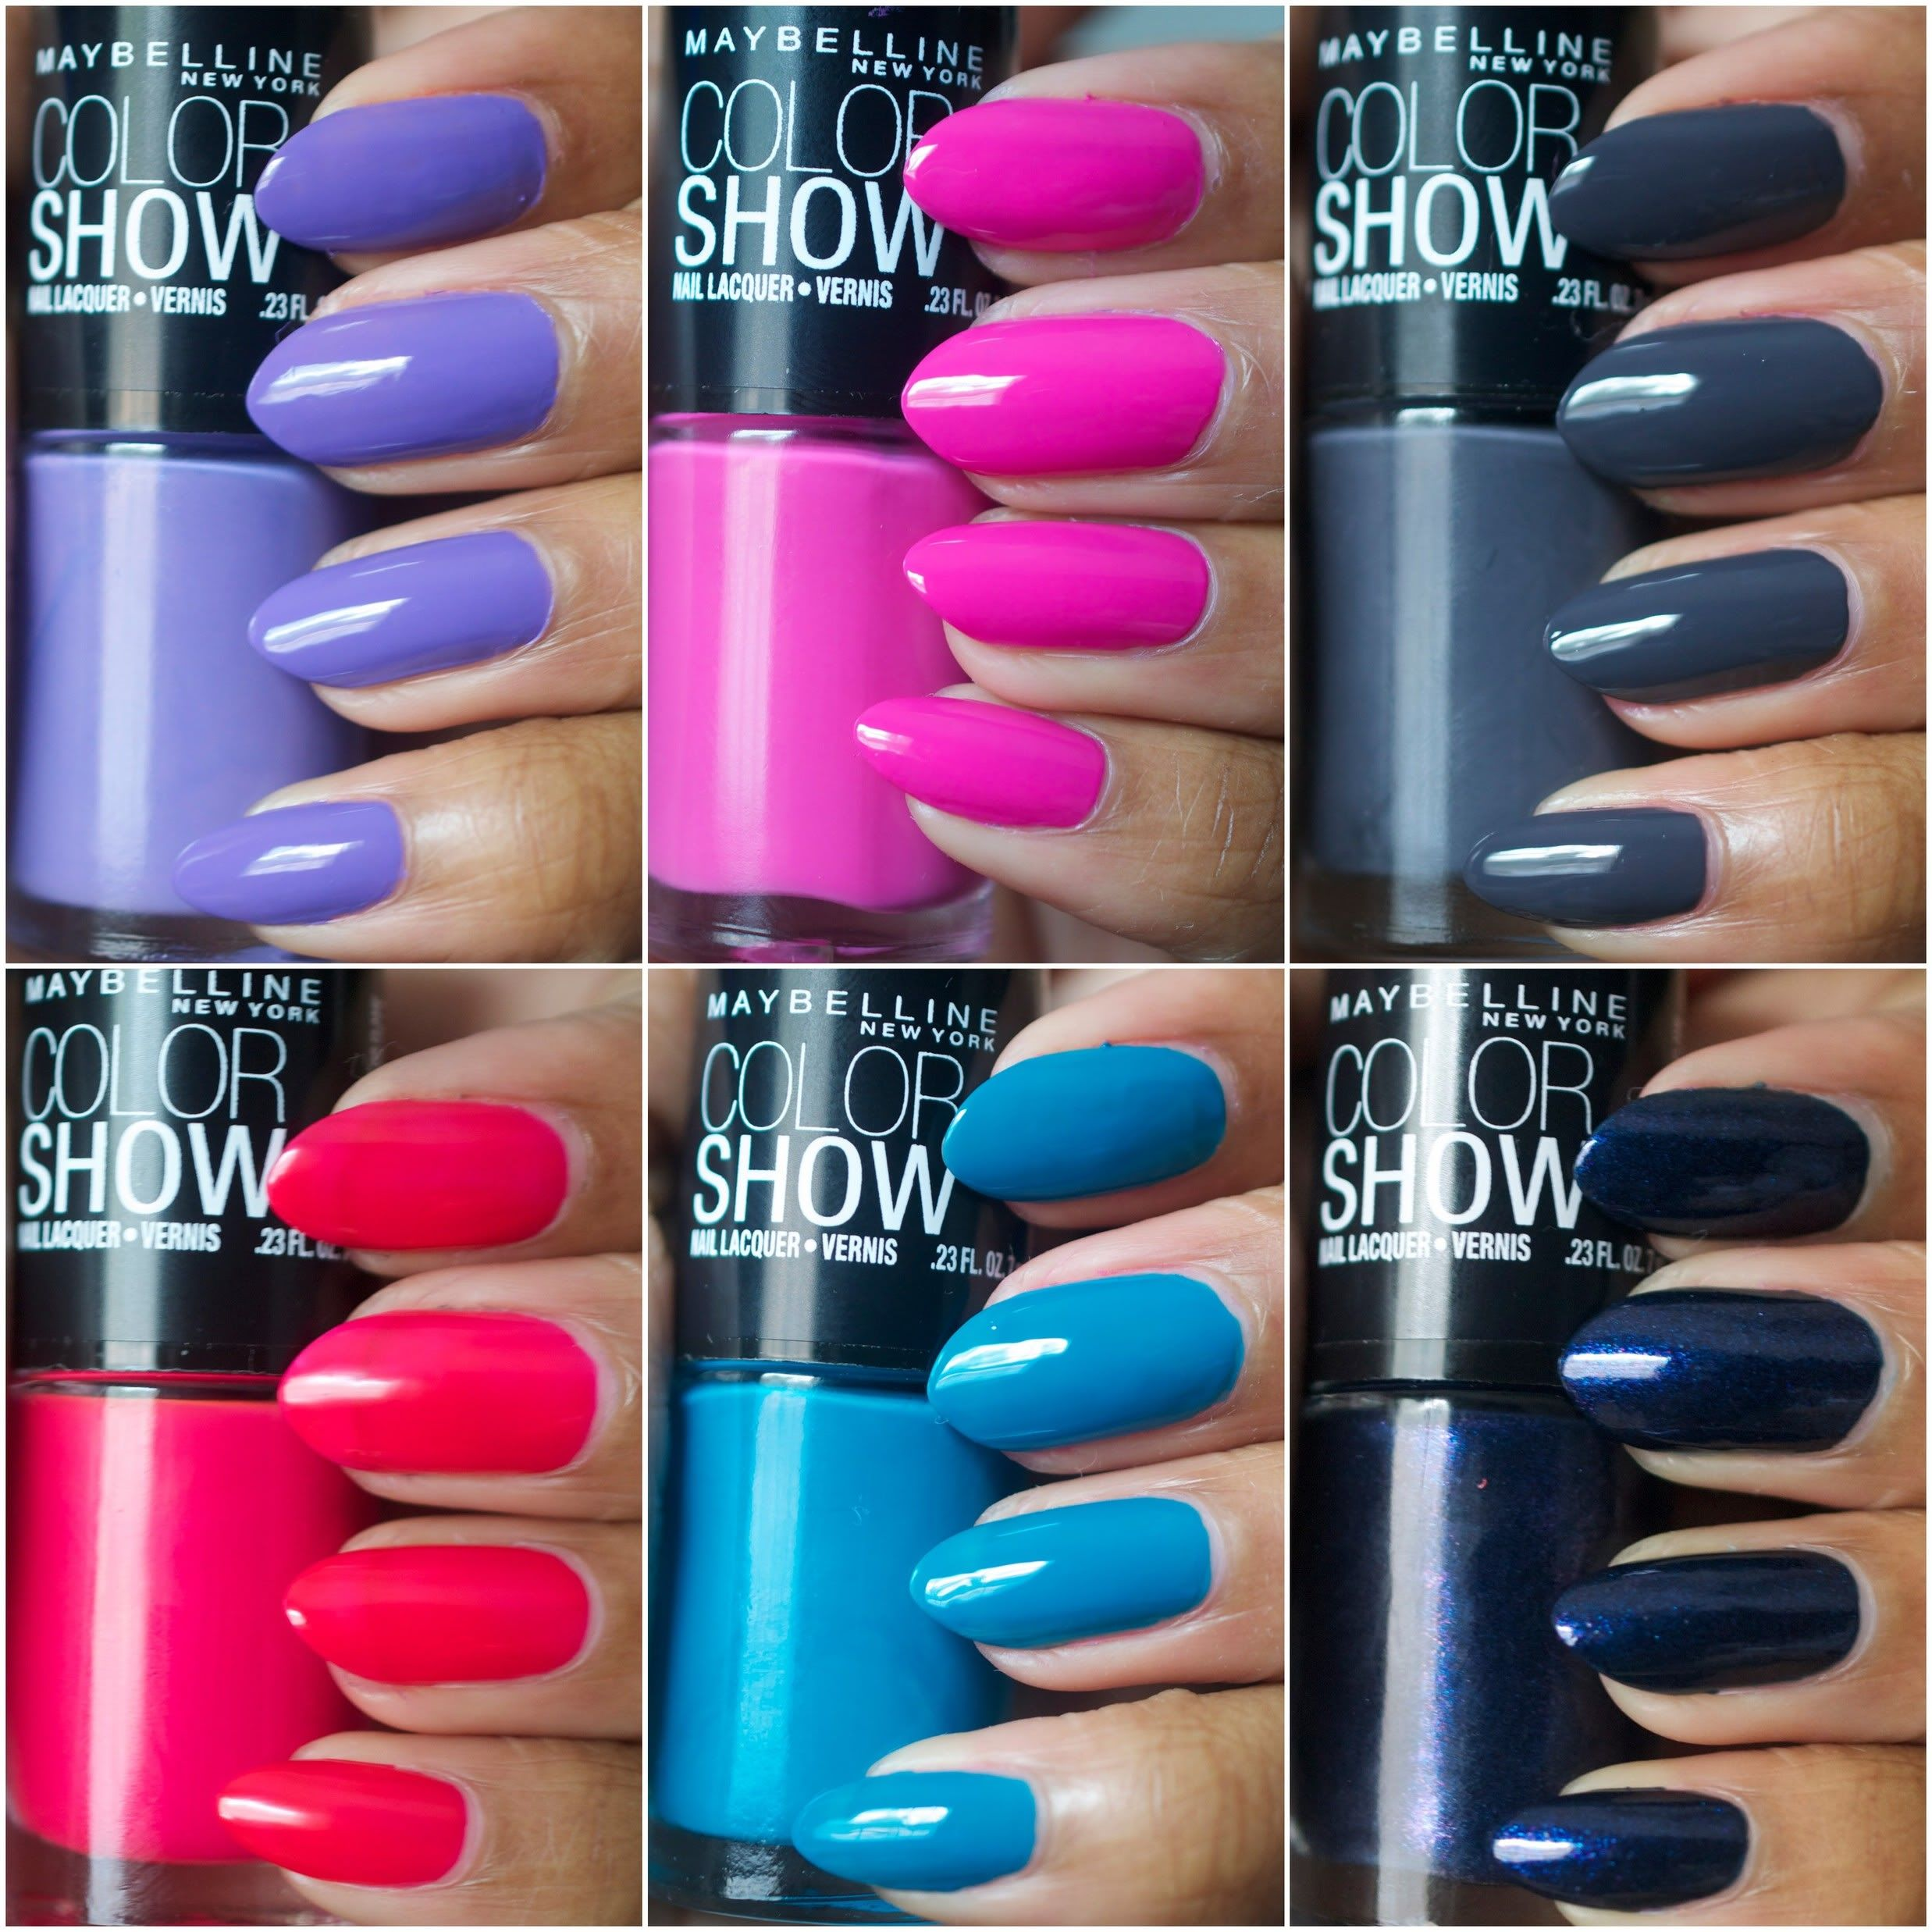 New York Summer Nail Polish: Amor De Lacquer: Maybelline Color Show Nail Polishes